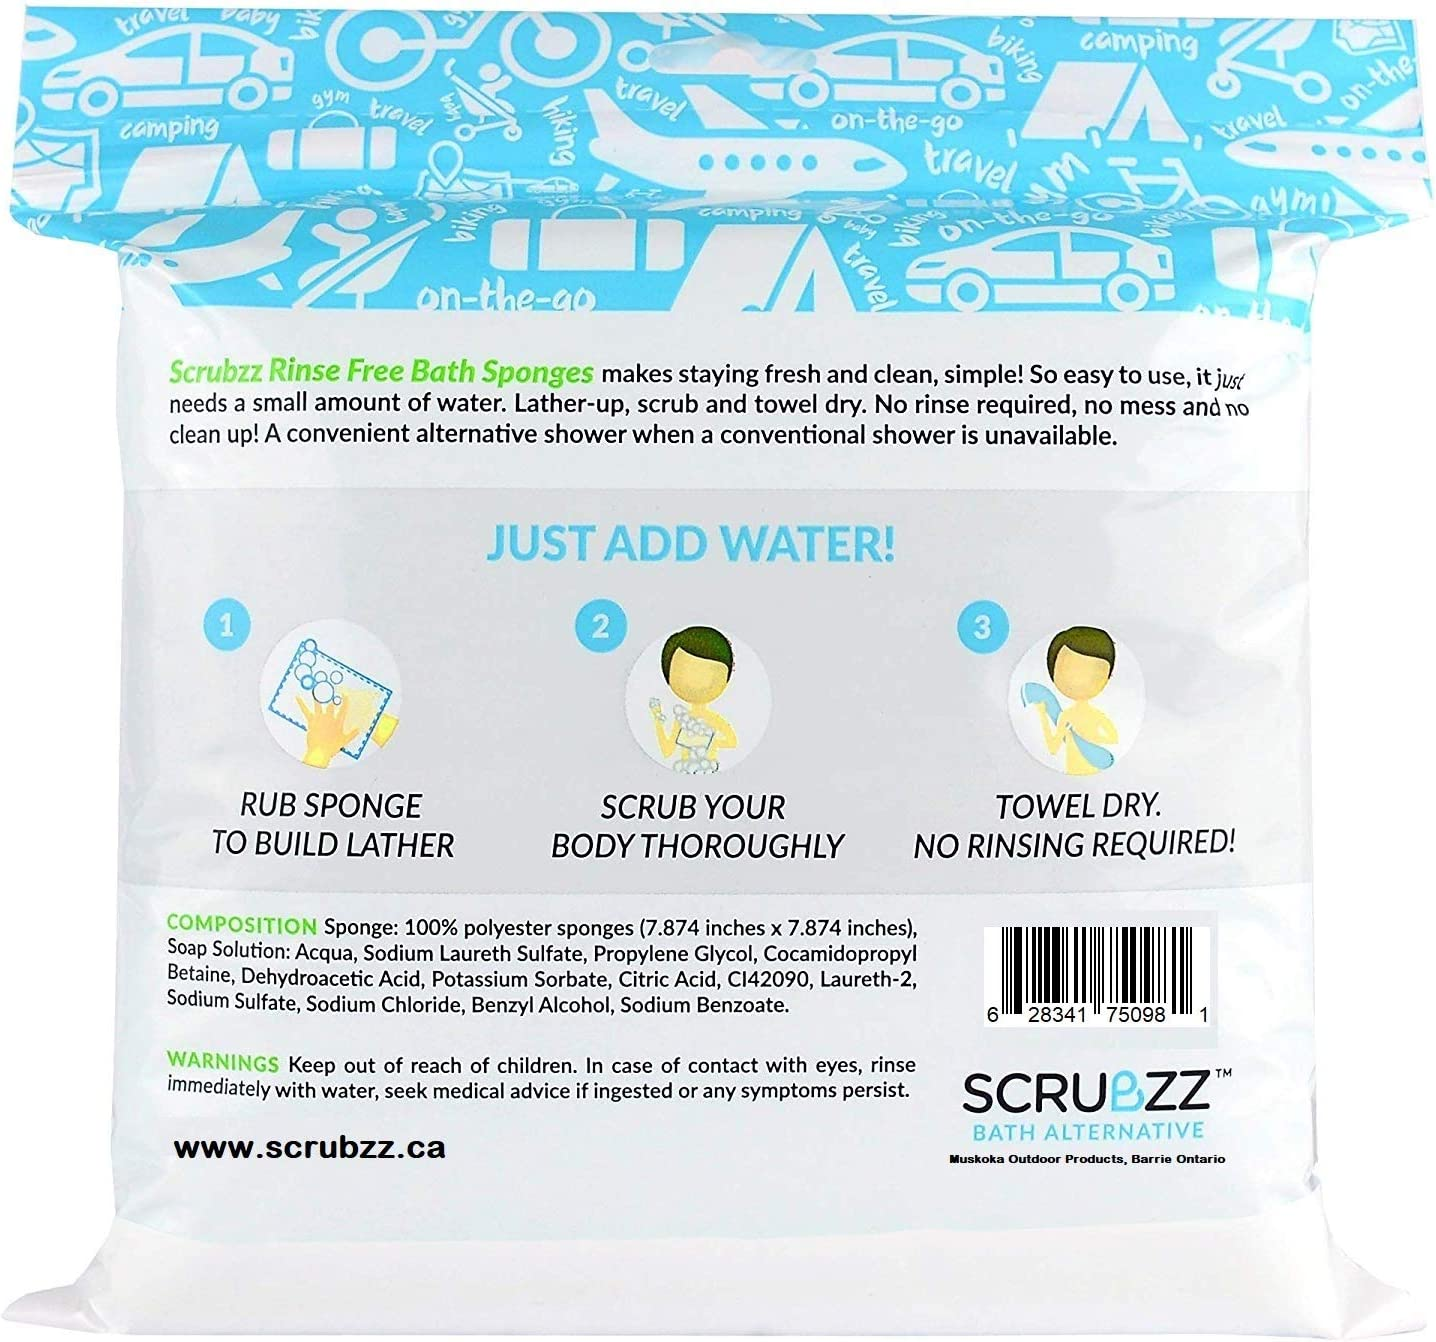 Scrubzz Disposable No Rinse Bathing Wipes - 25 Pack - All-in-1 Single Use Shower Wipes, Simply Dampen, Lather, and Dry Without Shampoo or Rinsing: Health & Personal Care